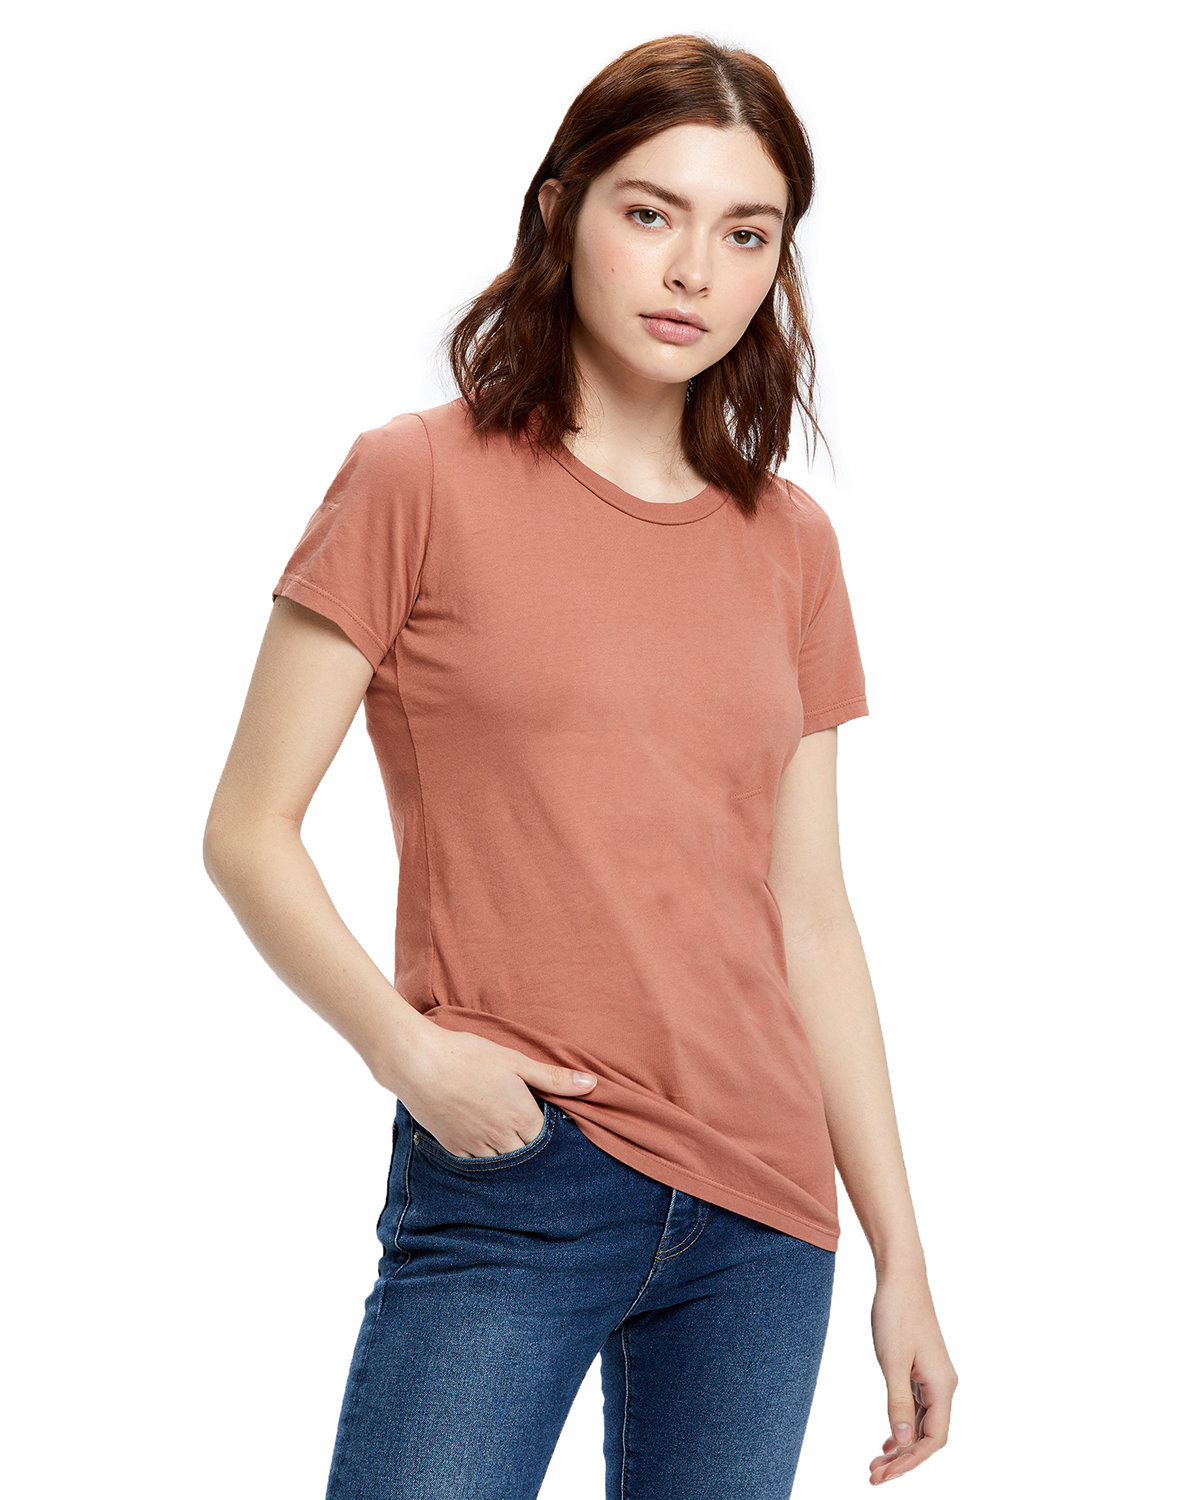 US Blanks Ladies' Made in USA Short Sleeve Crew T-Shirt CINNAMON